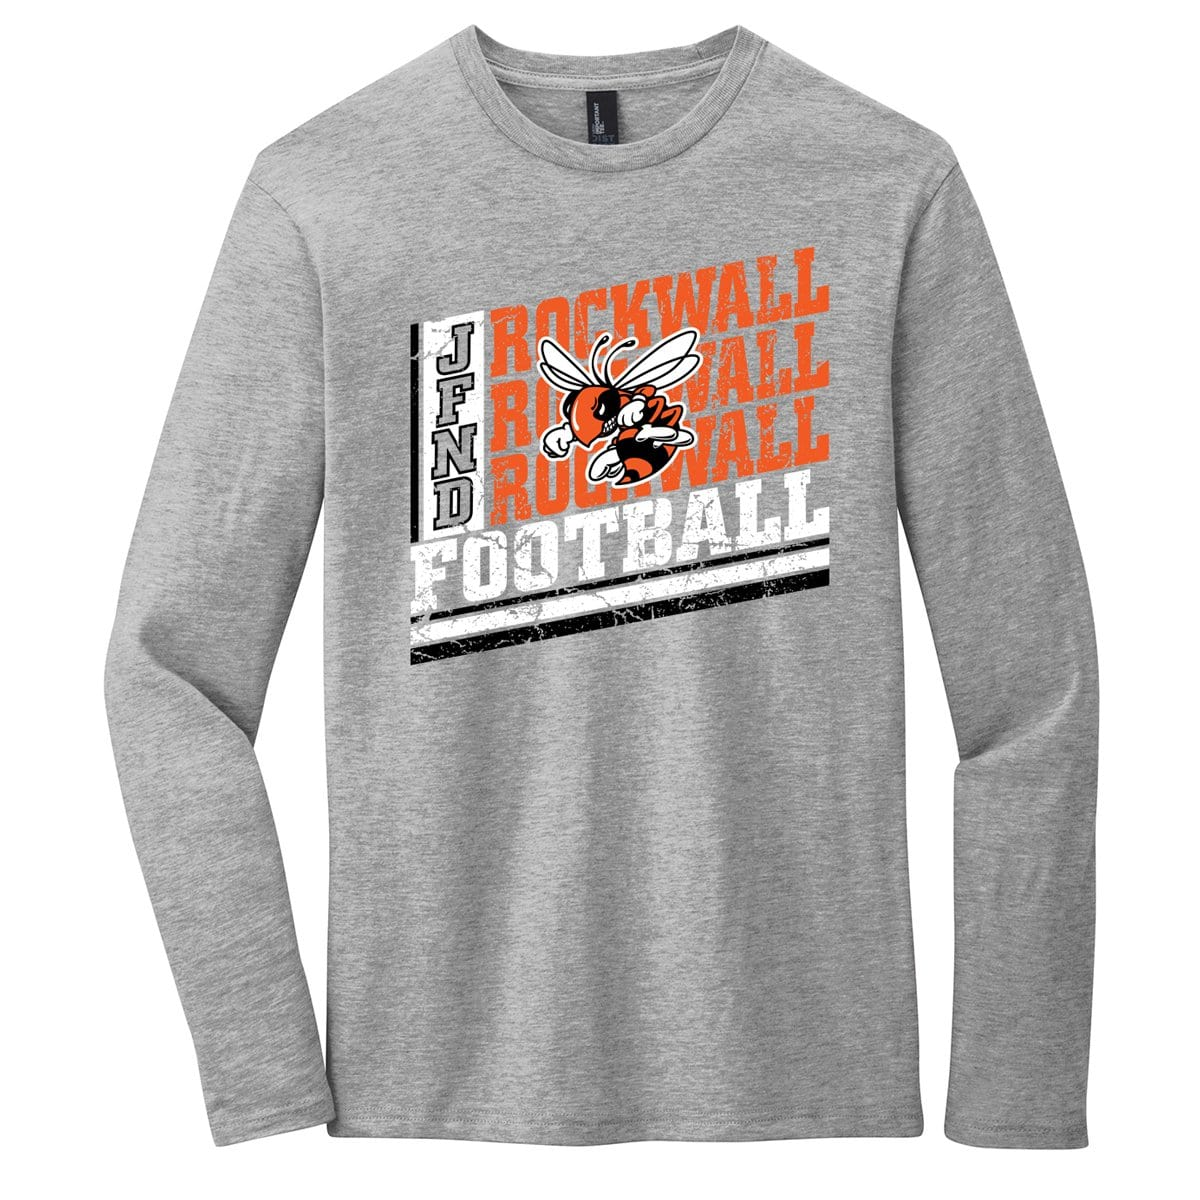 Rockwall Repeating Football